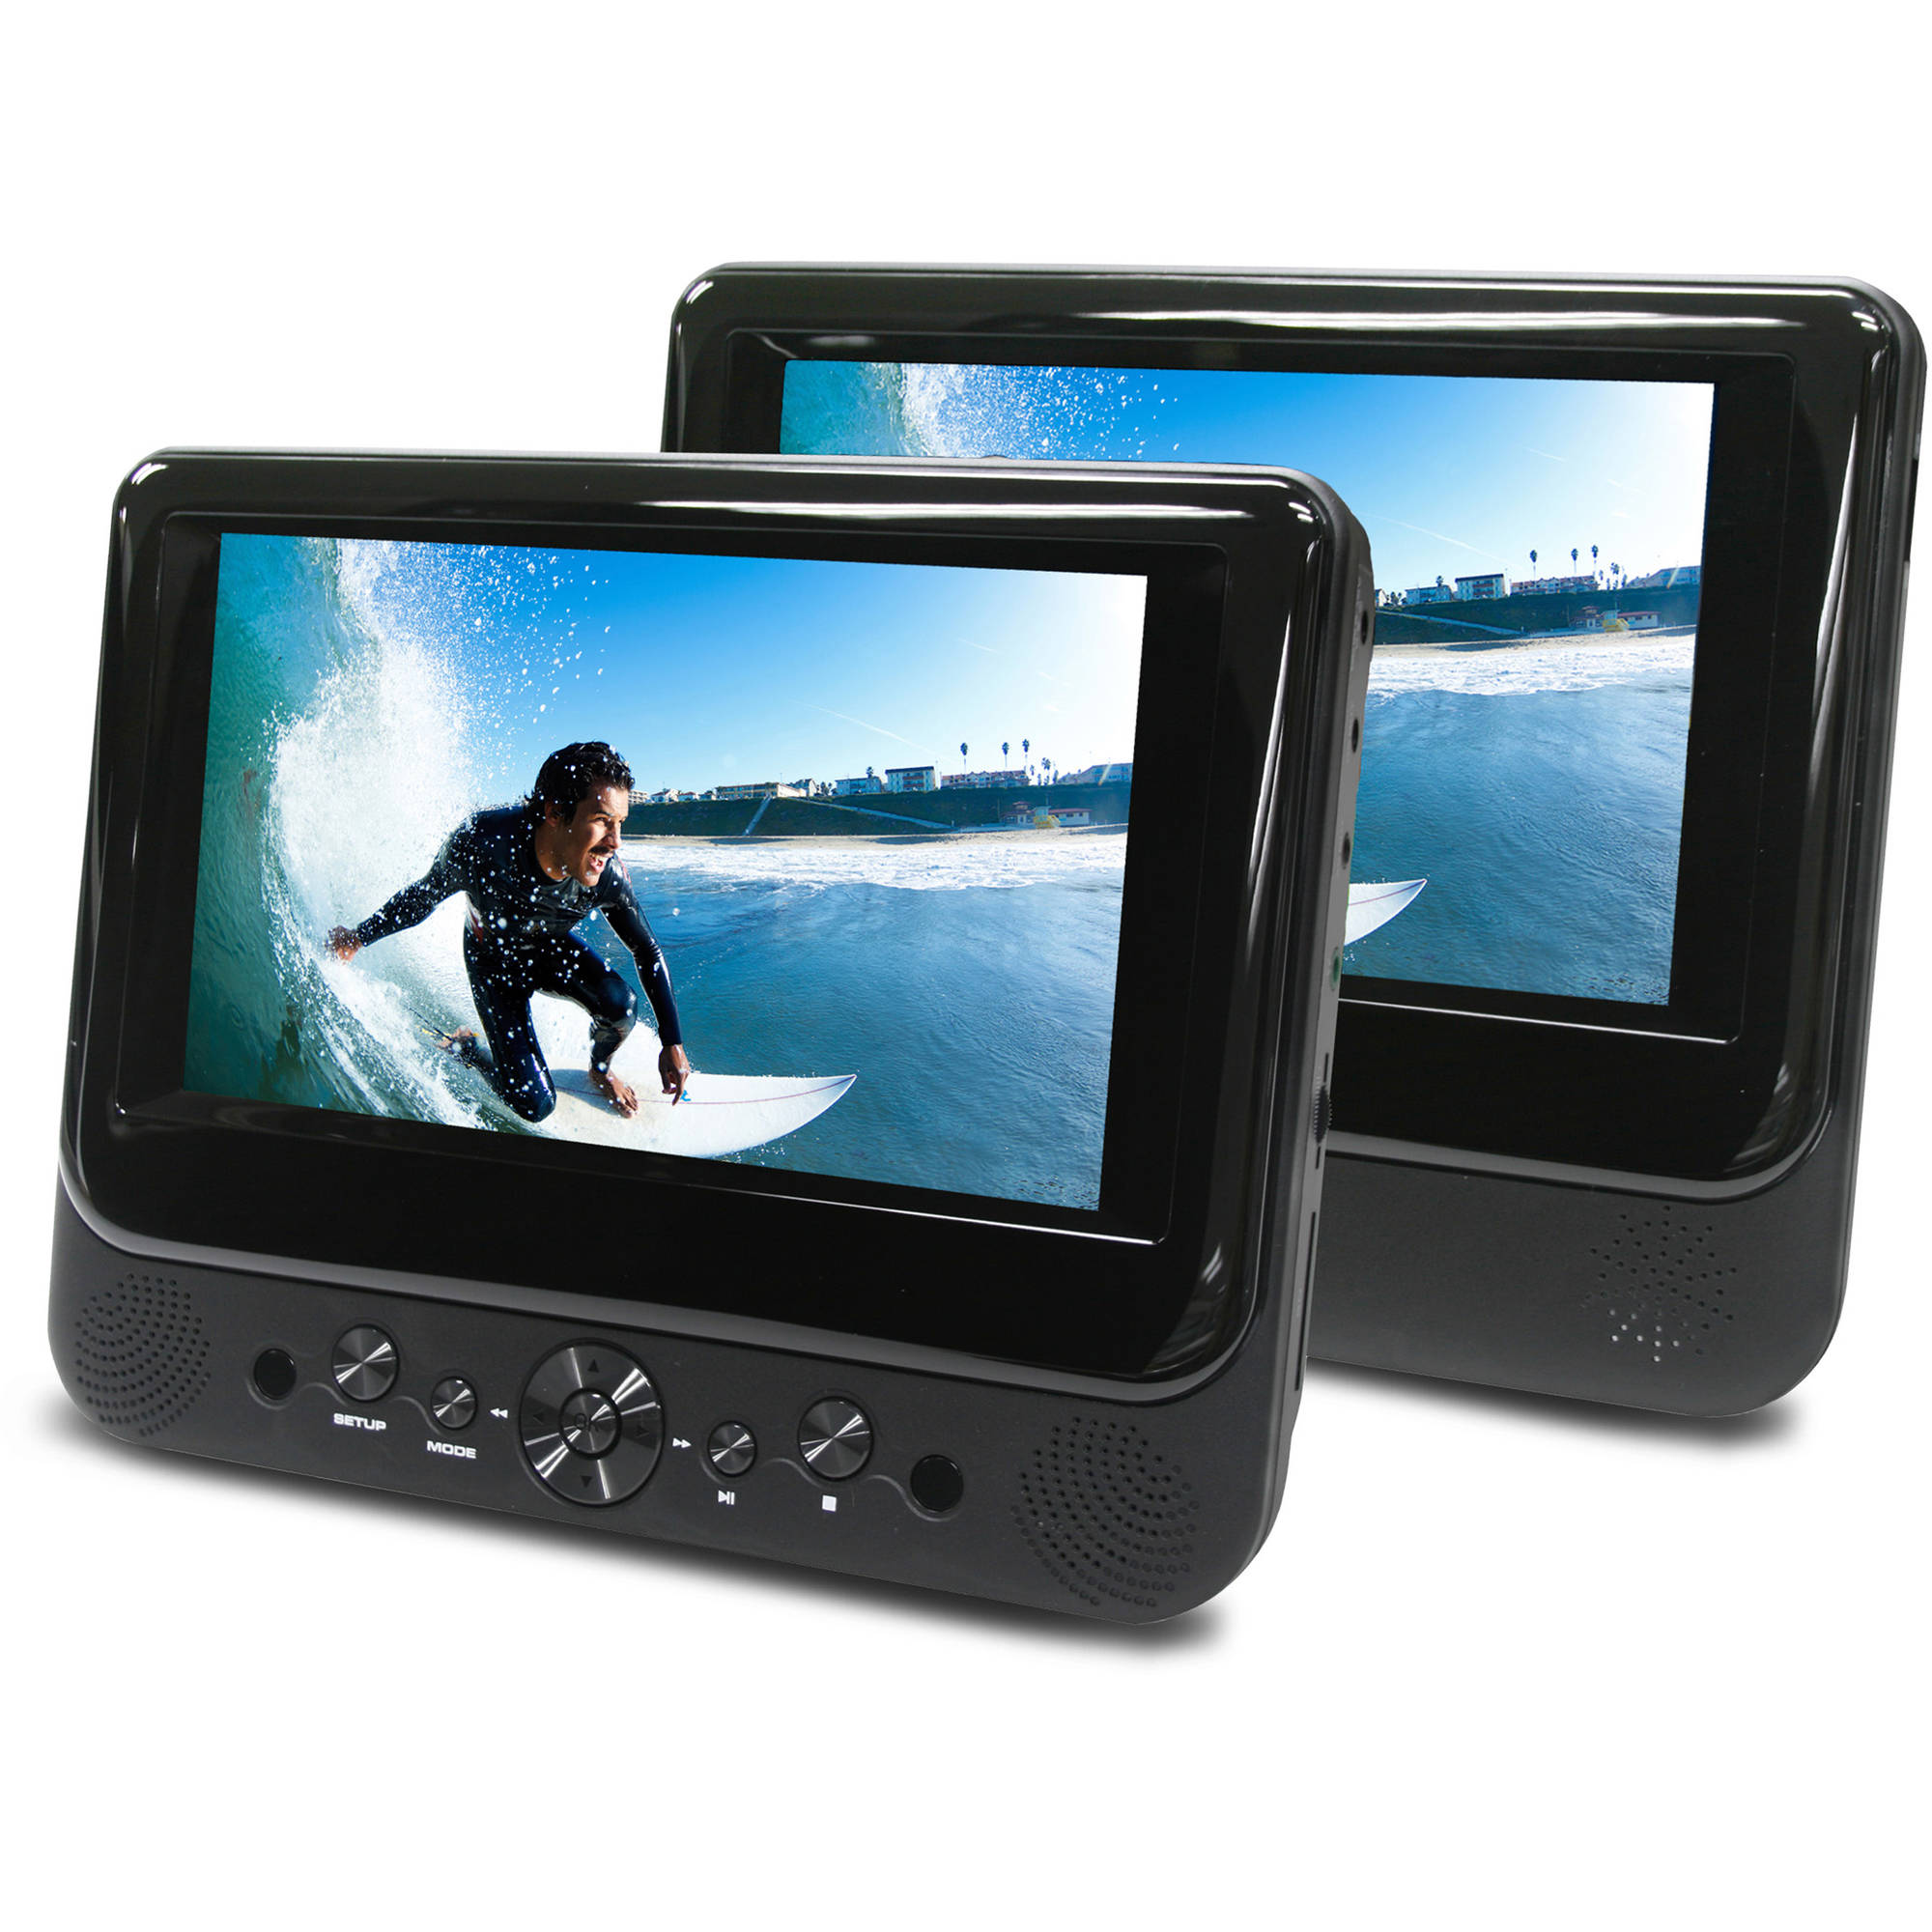 Ematic 7 Inch Dual Screen Portable DVD Player - Walmart.com